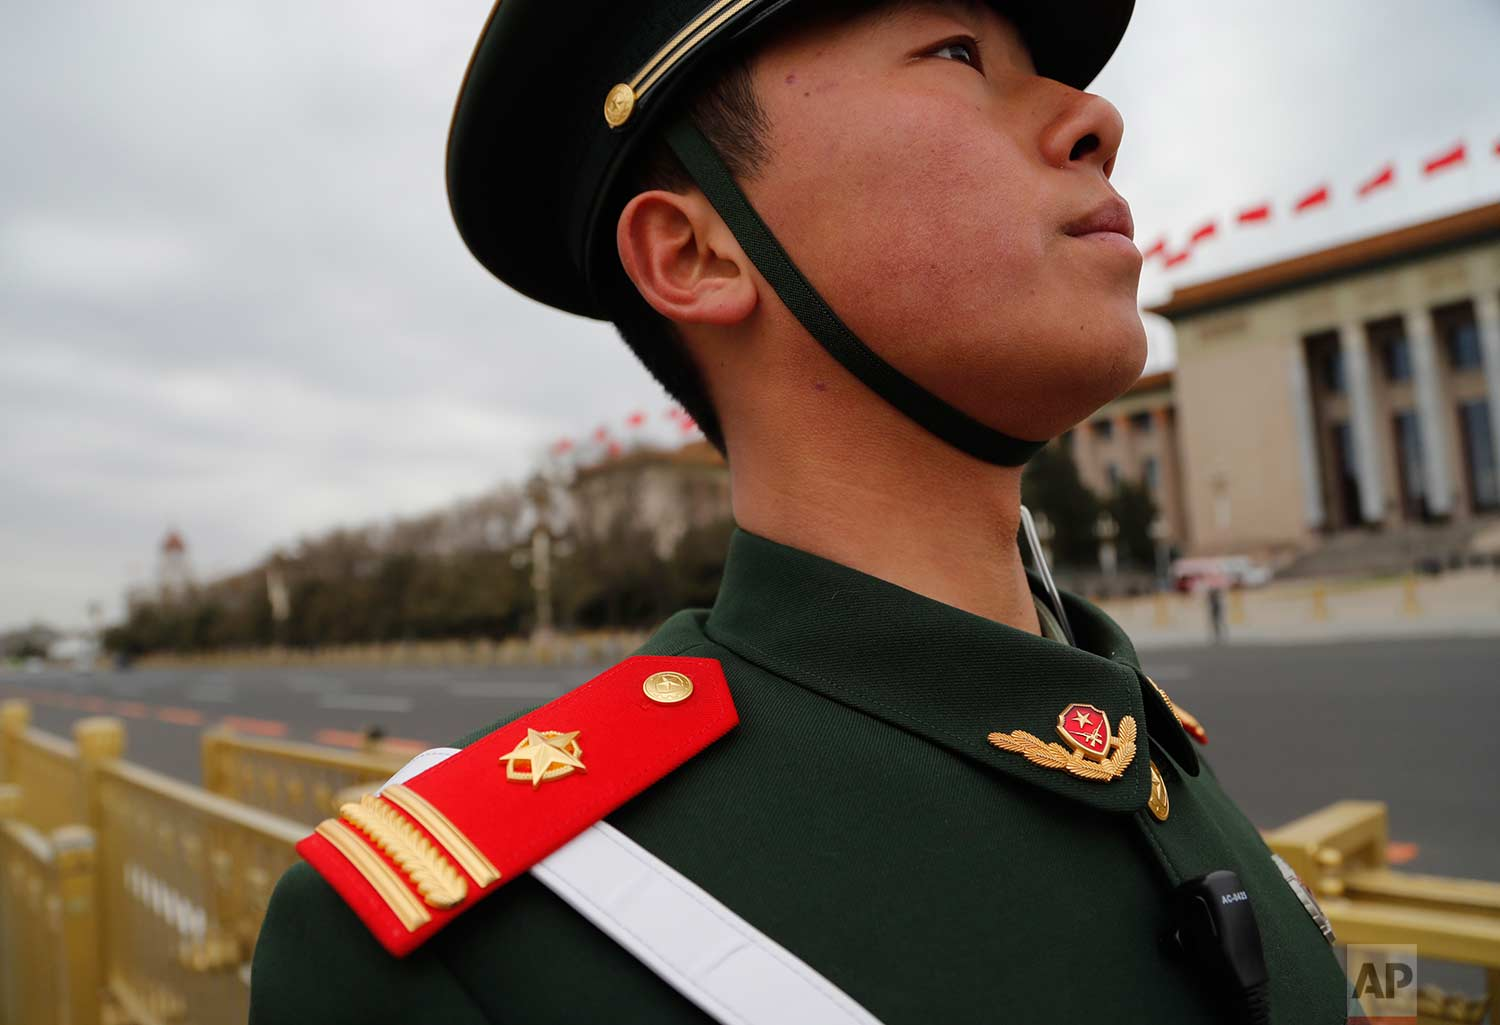 In this Thursday, March 15, 2018 photo, a Chinese paramilitary policeman wears a red epaulette on his shoulder as he stands guard during the closing session of the Chinese People's Political Consultative Conference (CPPCC) at the Great Hall of the People in Beijing. (AP Photo/Aijaz Rahi)